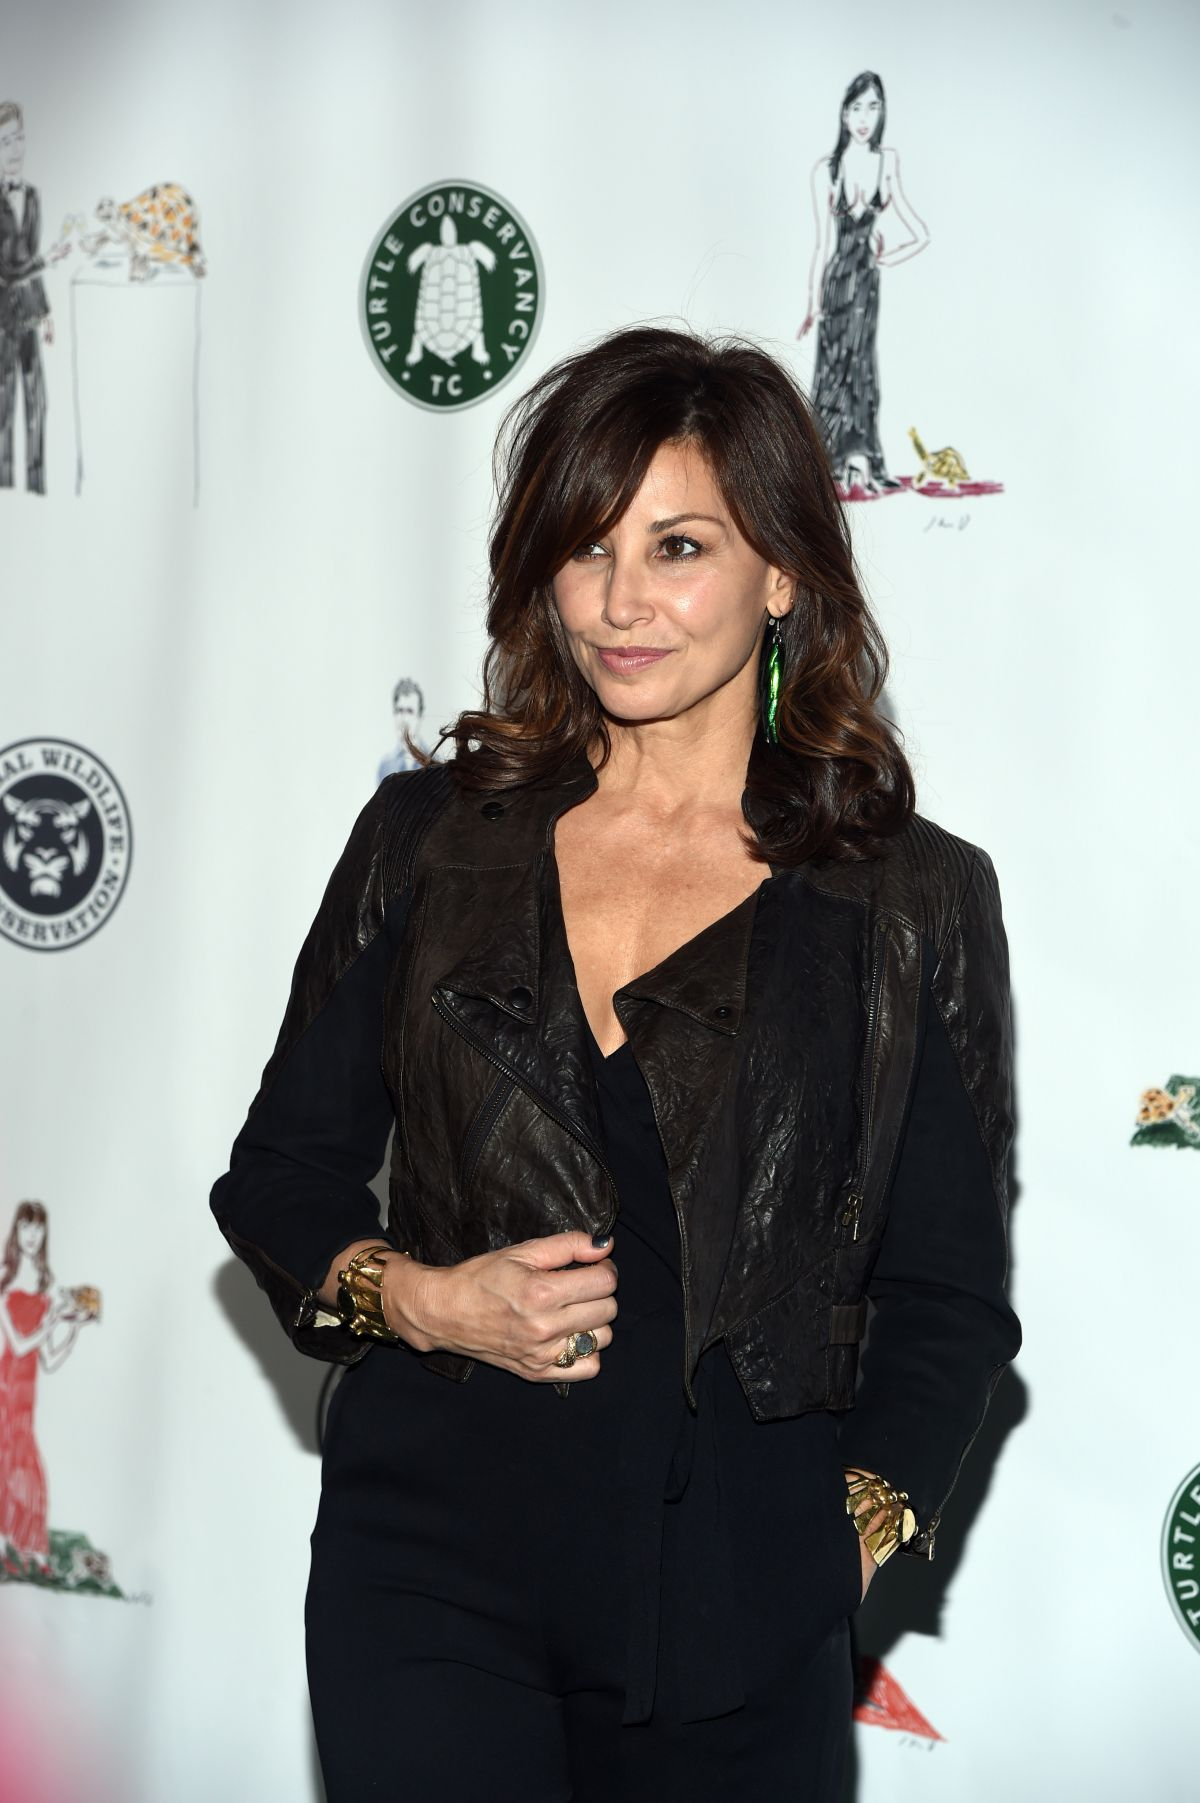 GINA GERSHON at Turtle Ball in New York 04/17/2017